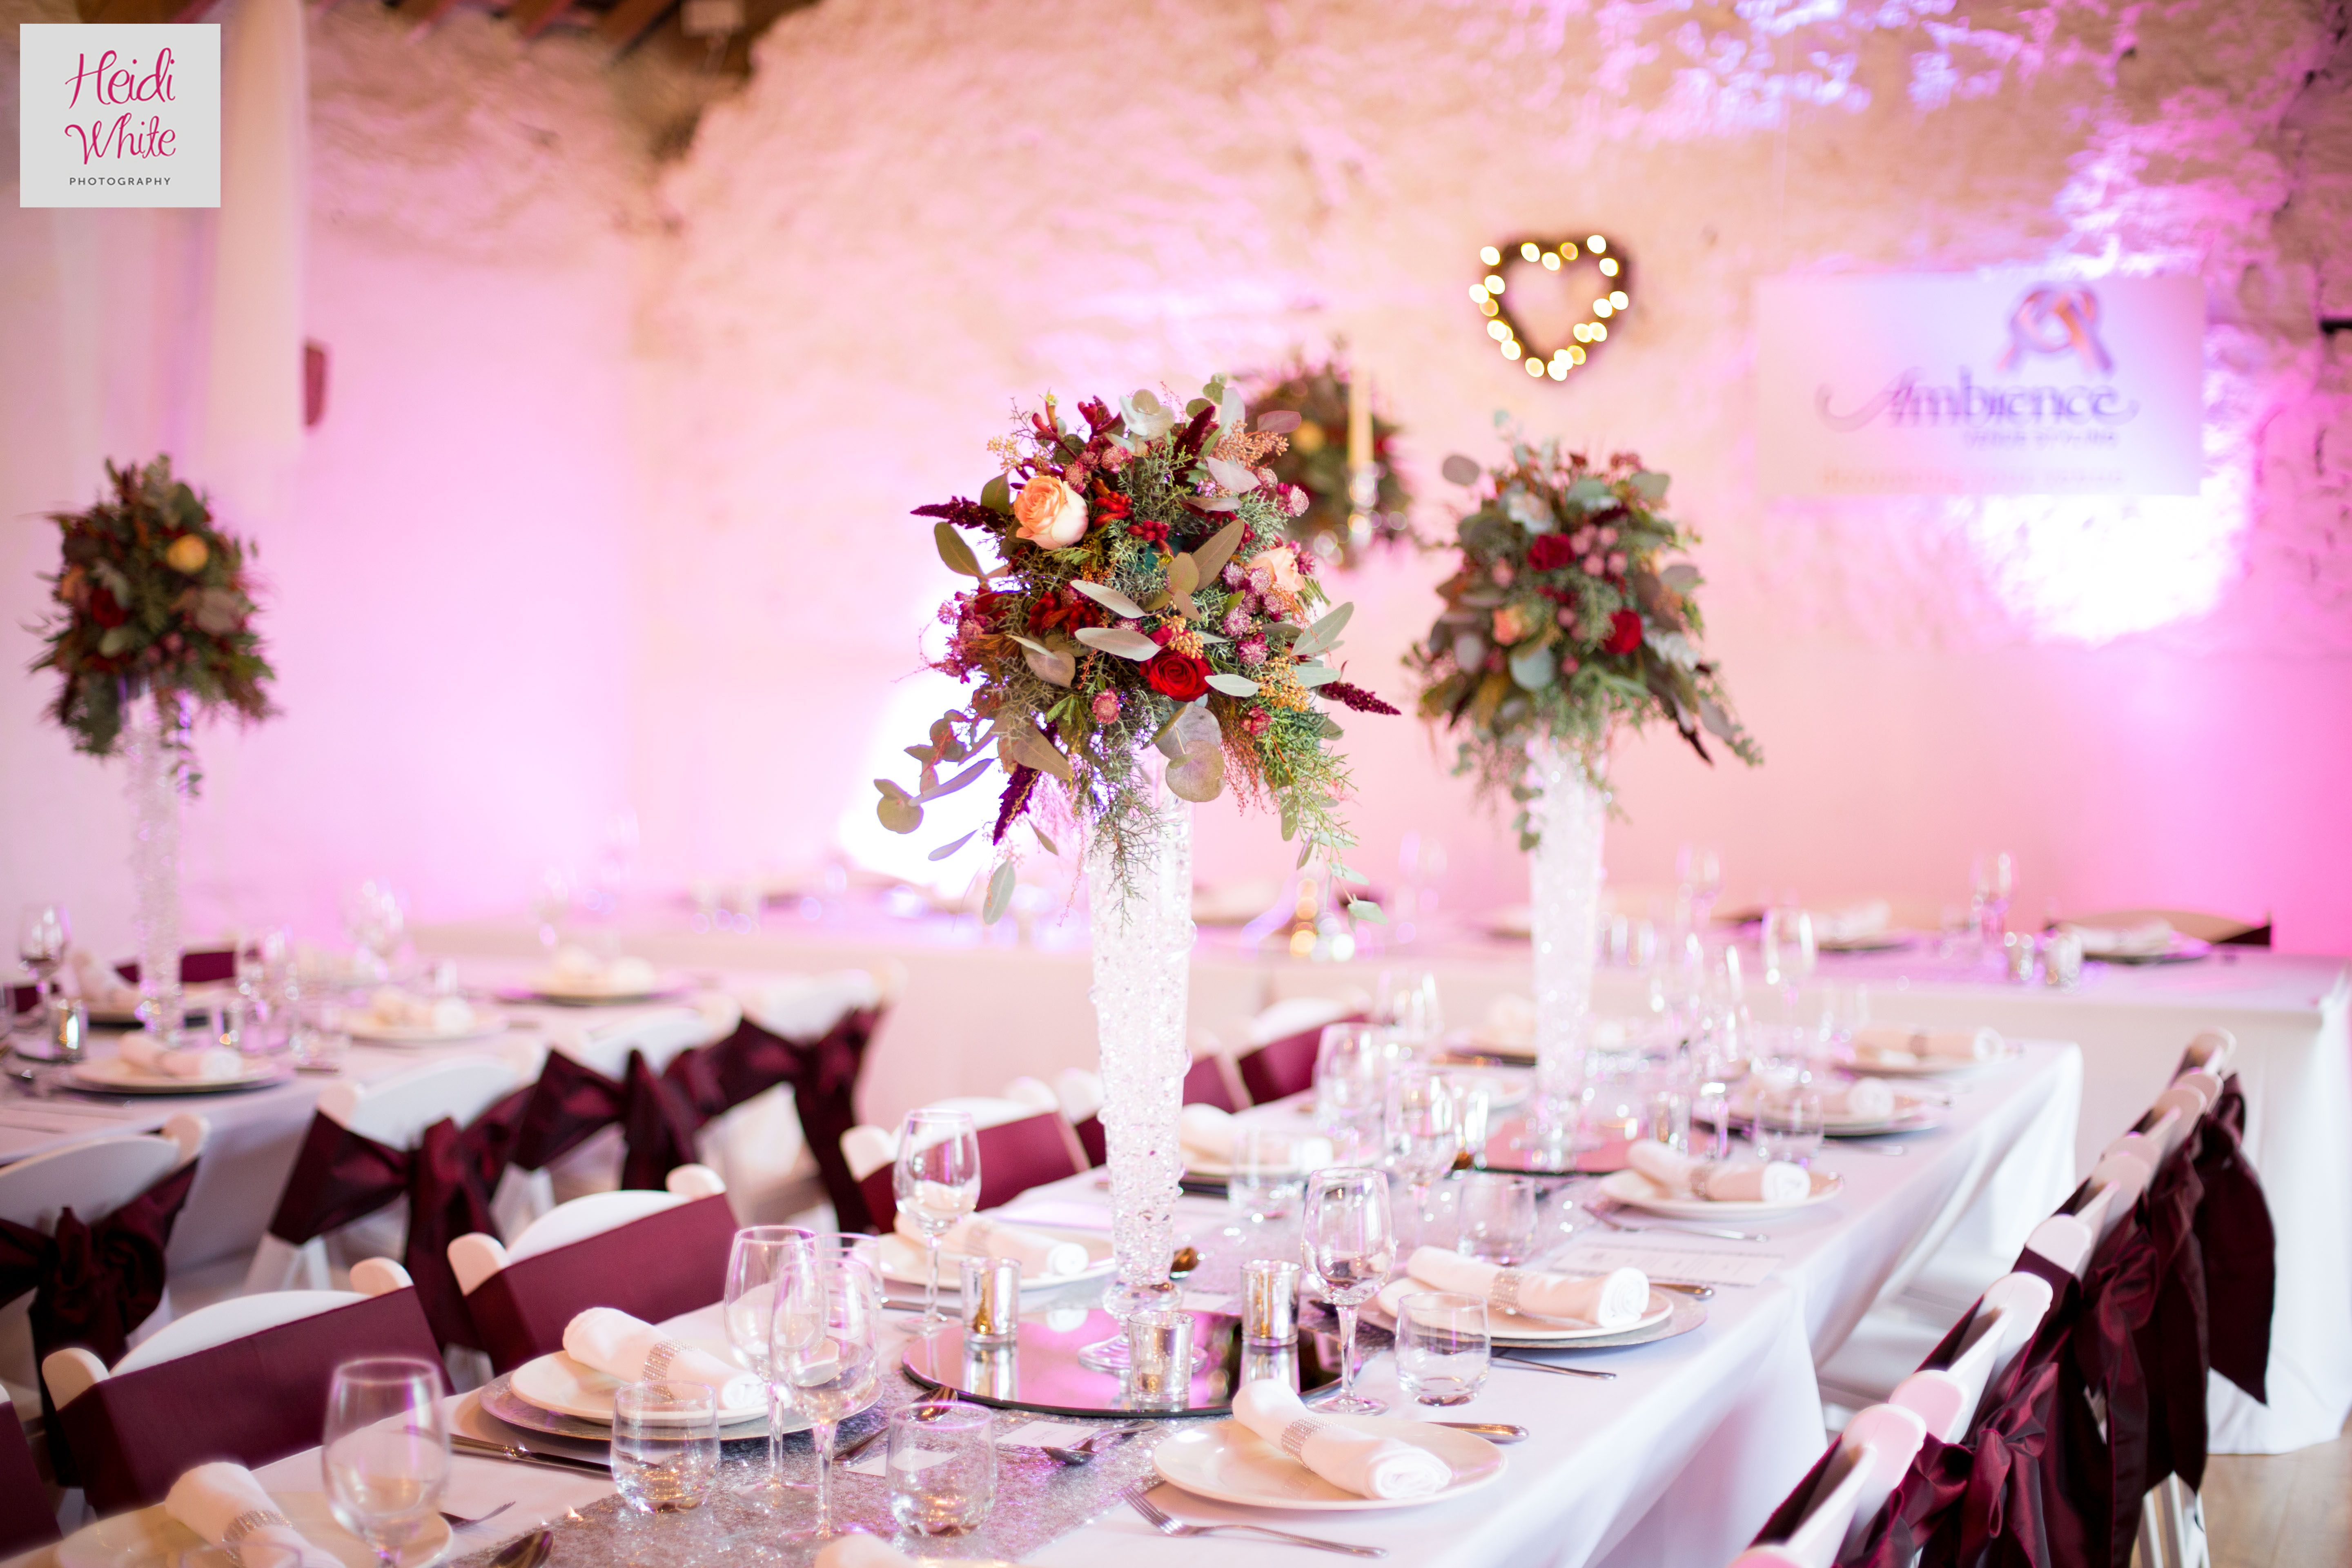 We love the table decor at this wedding! Captured at The Old Barn ...